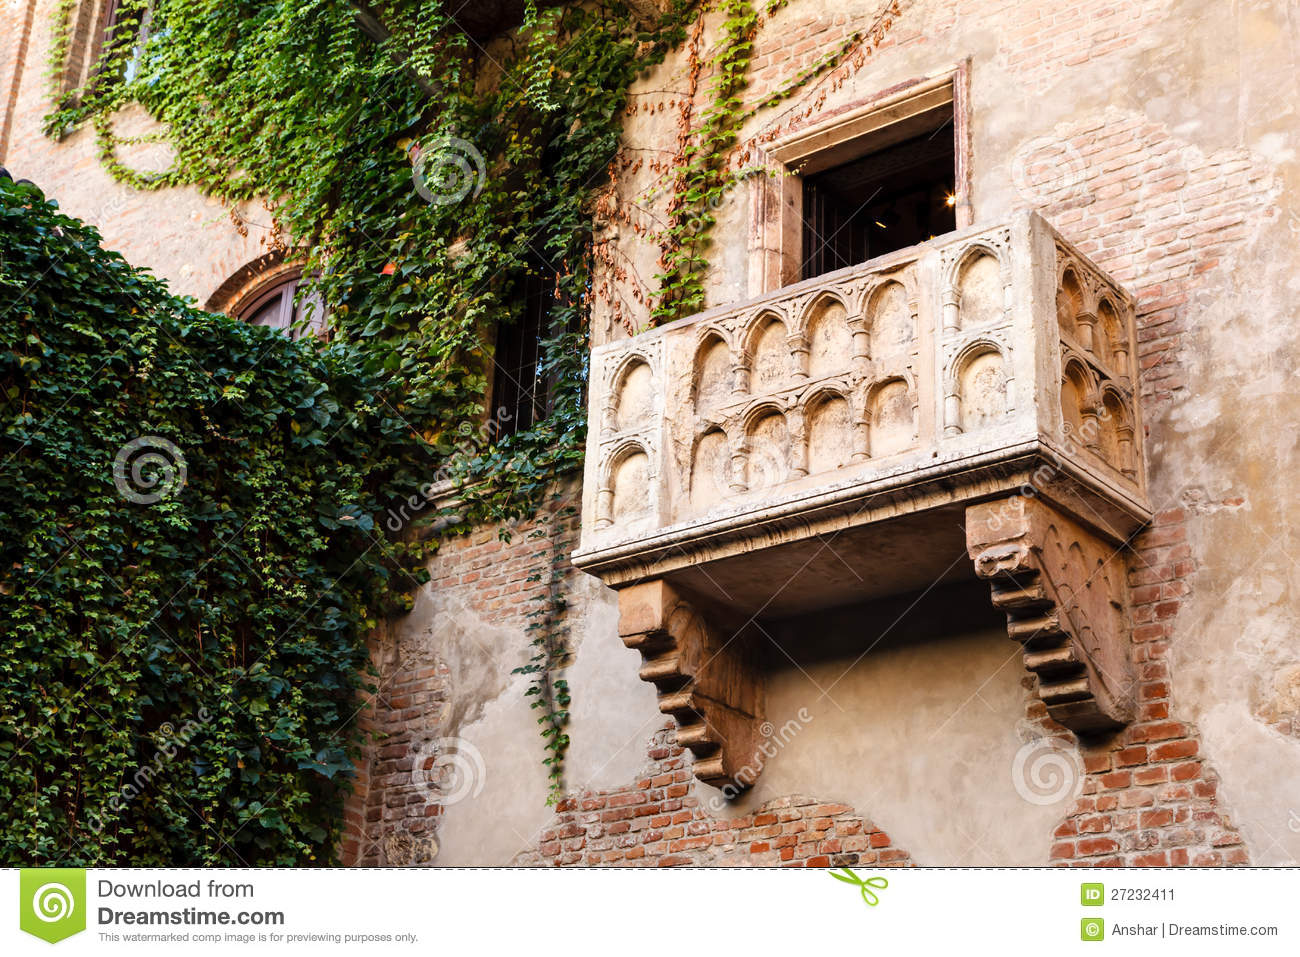 The famous balcony of juliet capulet home stock image for Famous balcony